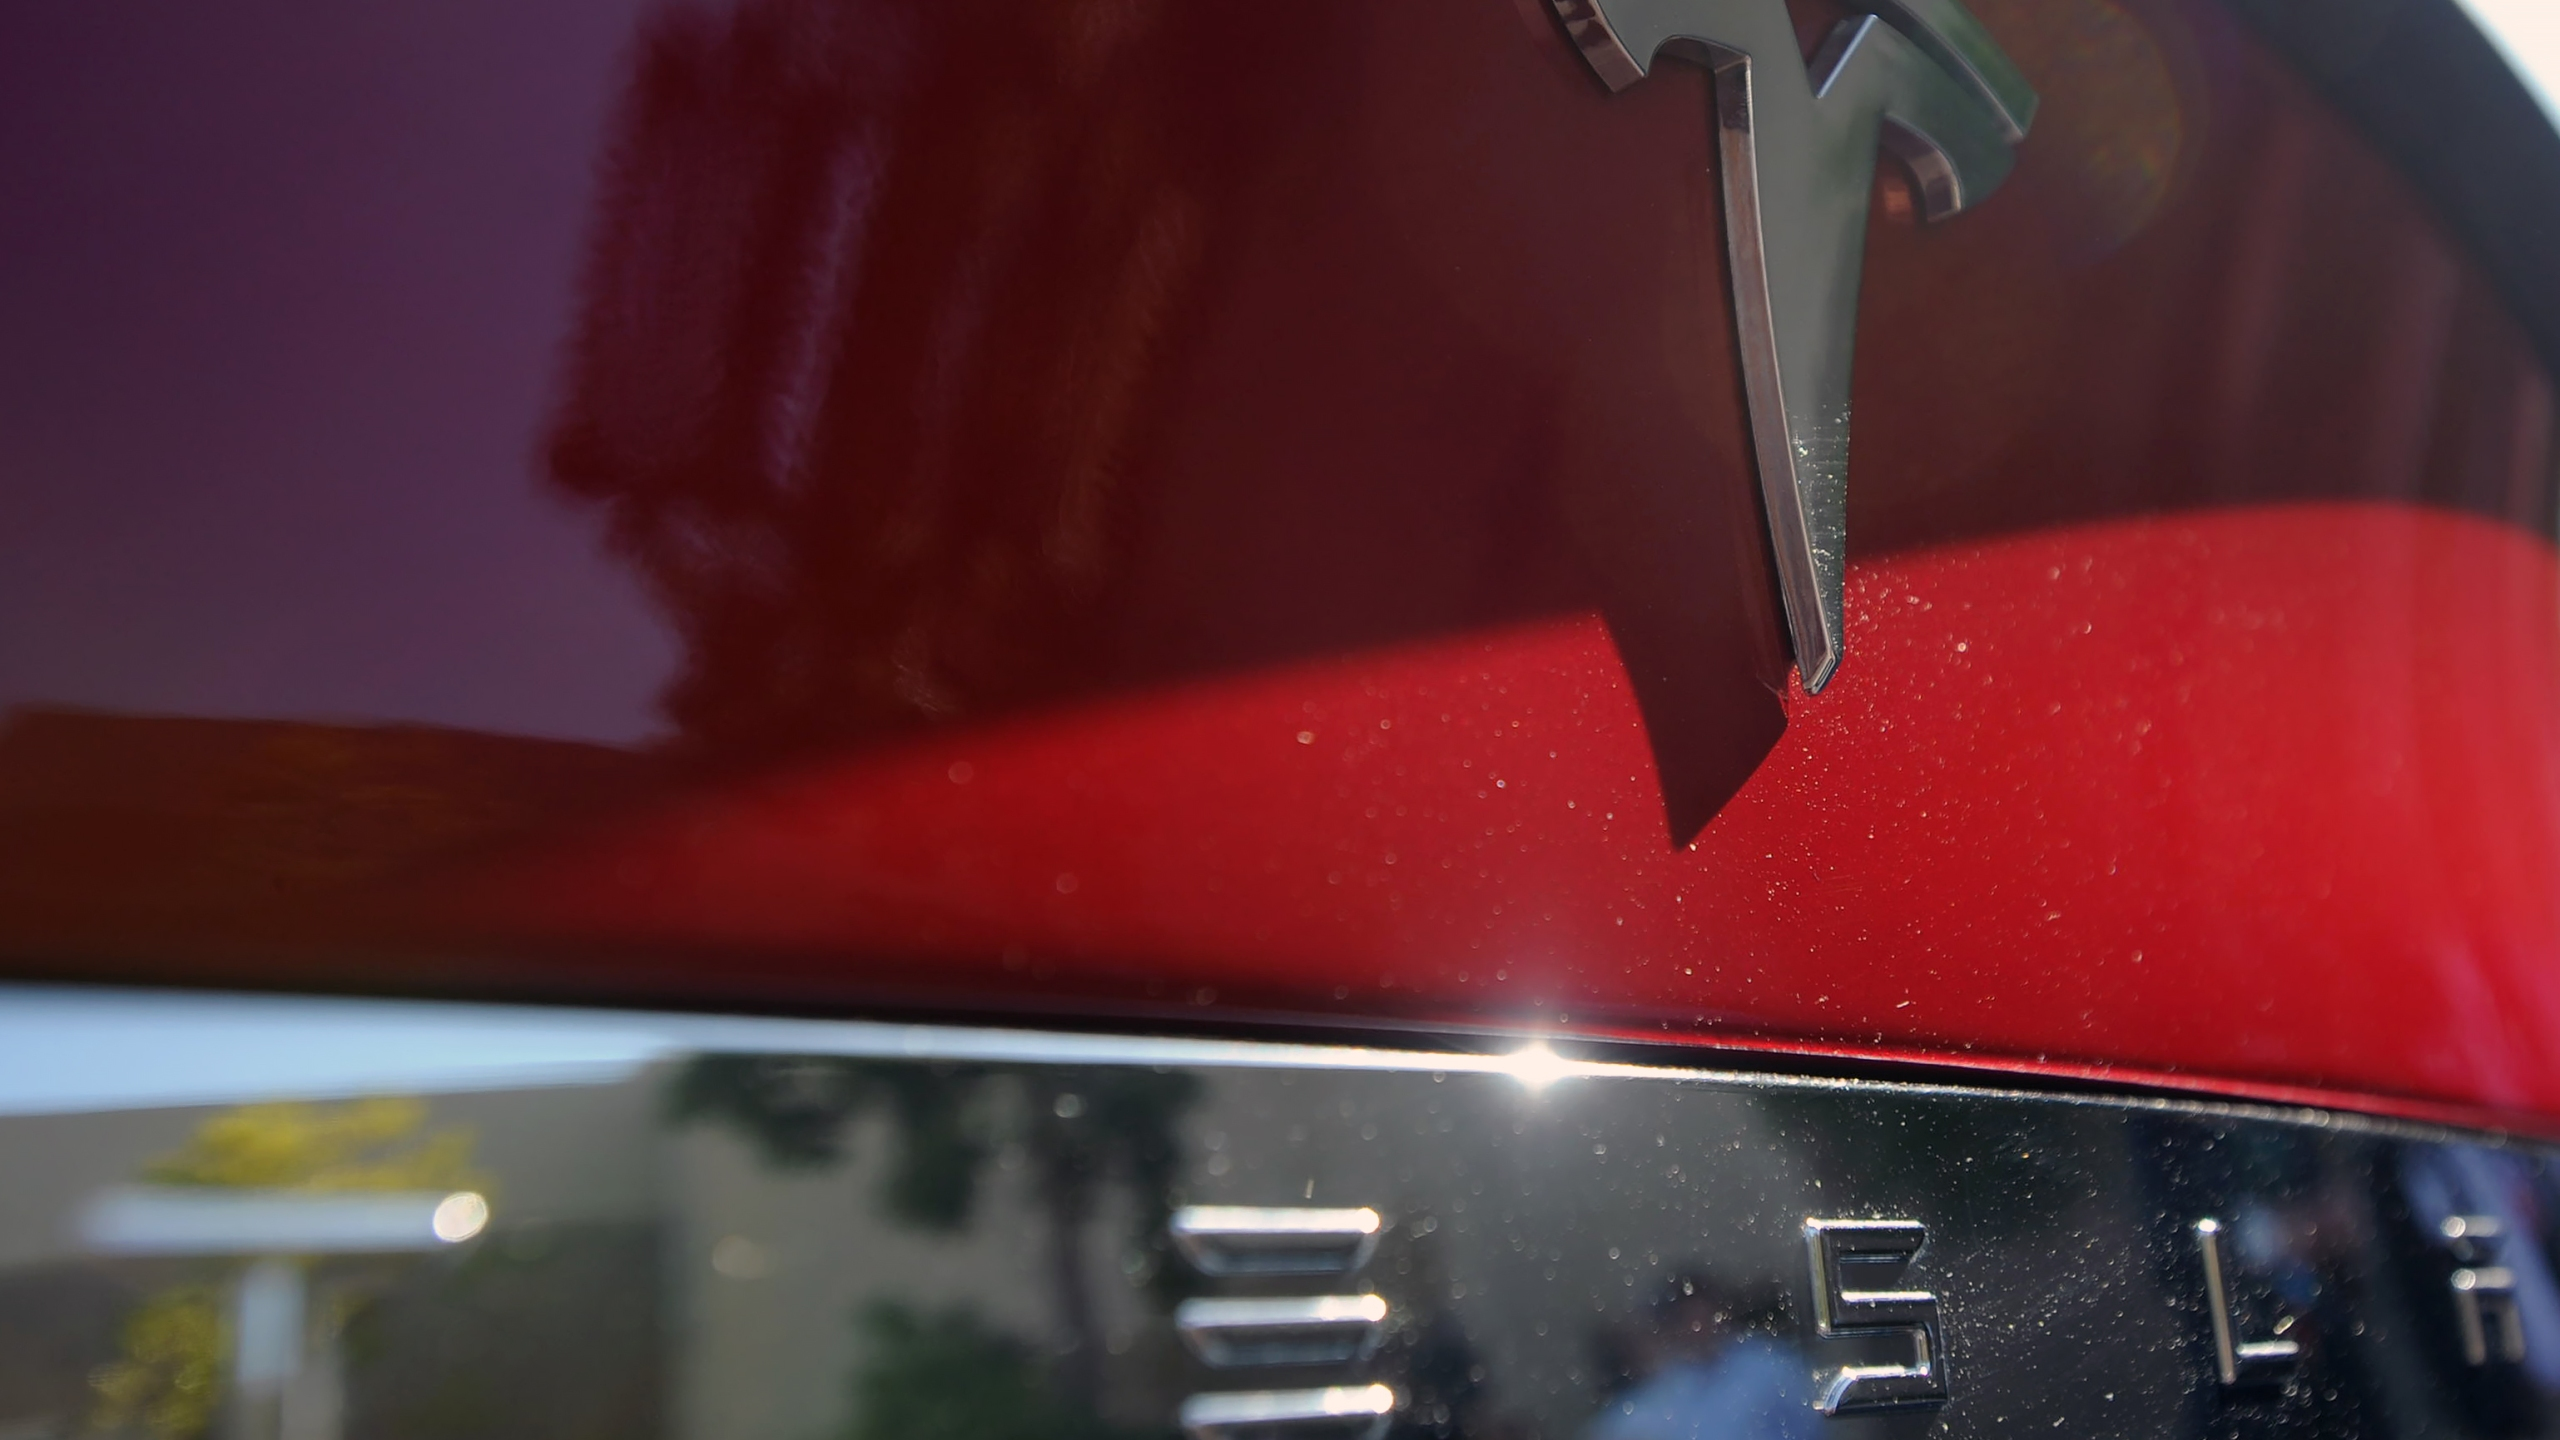 A Tesla Model S is seen at Tesla headquarters in Palo Alto on April 30, 2015 . (JOSH EDELSON/AFP via Getty Images)